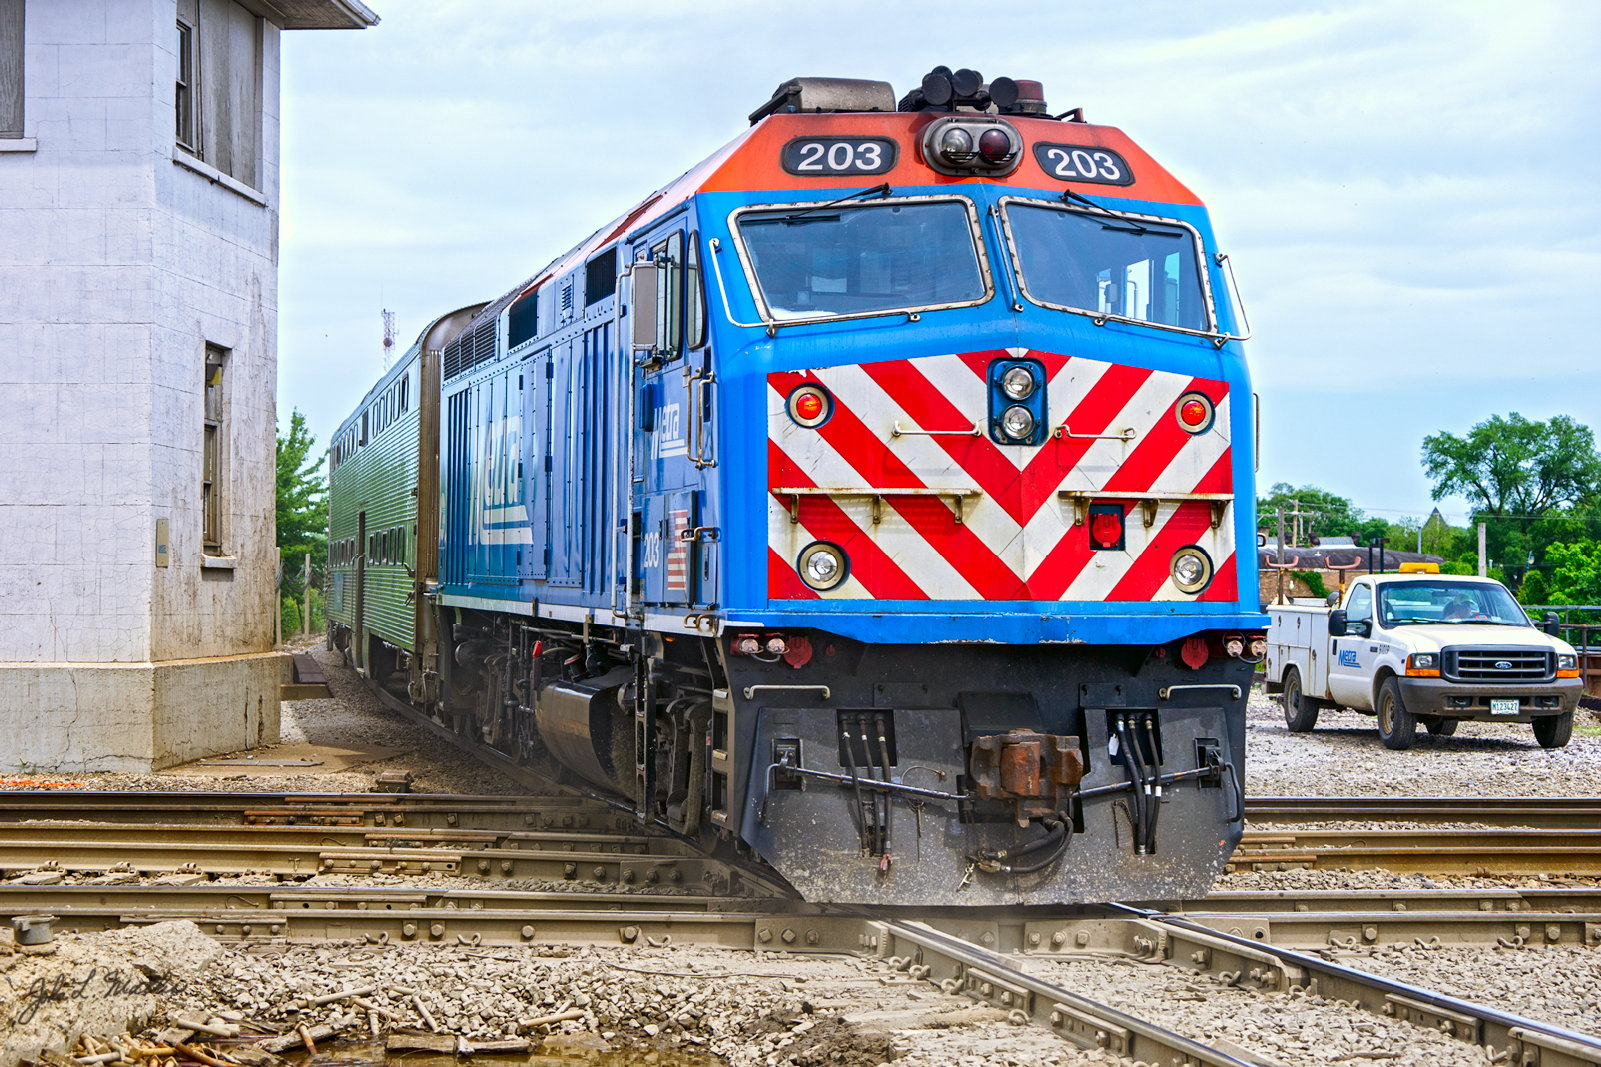 METX (Metra) 203 pushes out of Joliet, IL on June 4, 2013.